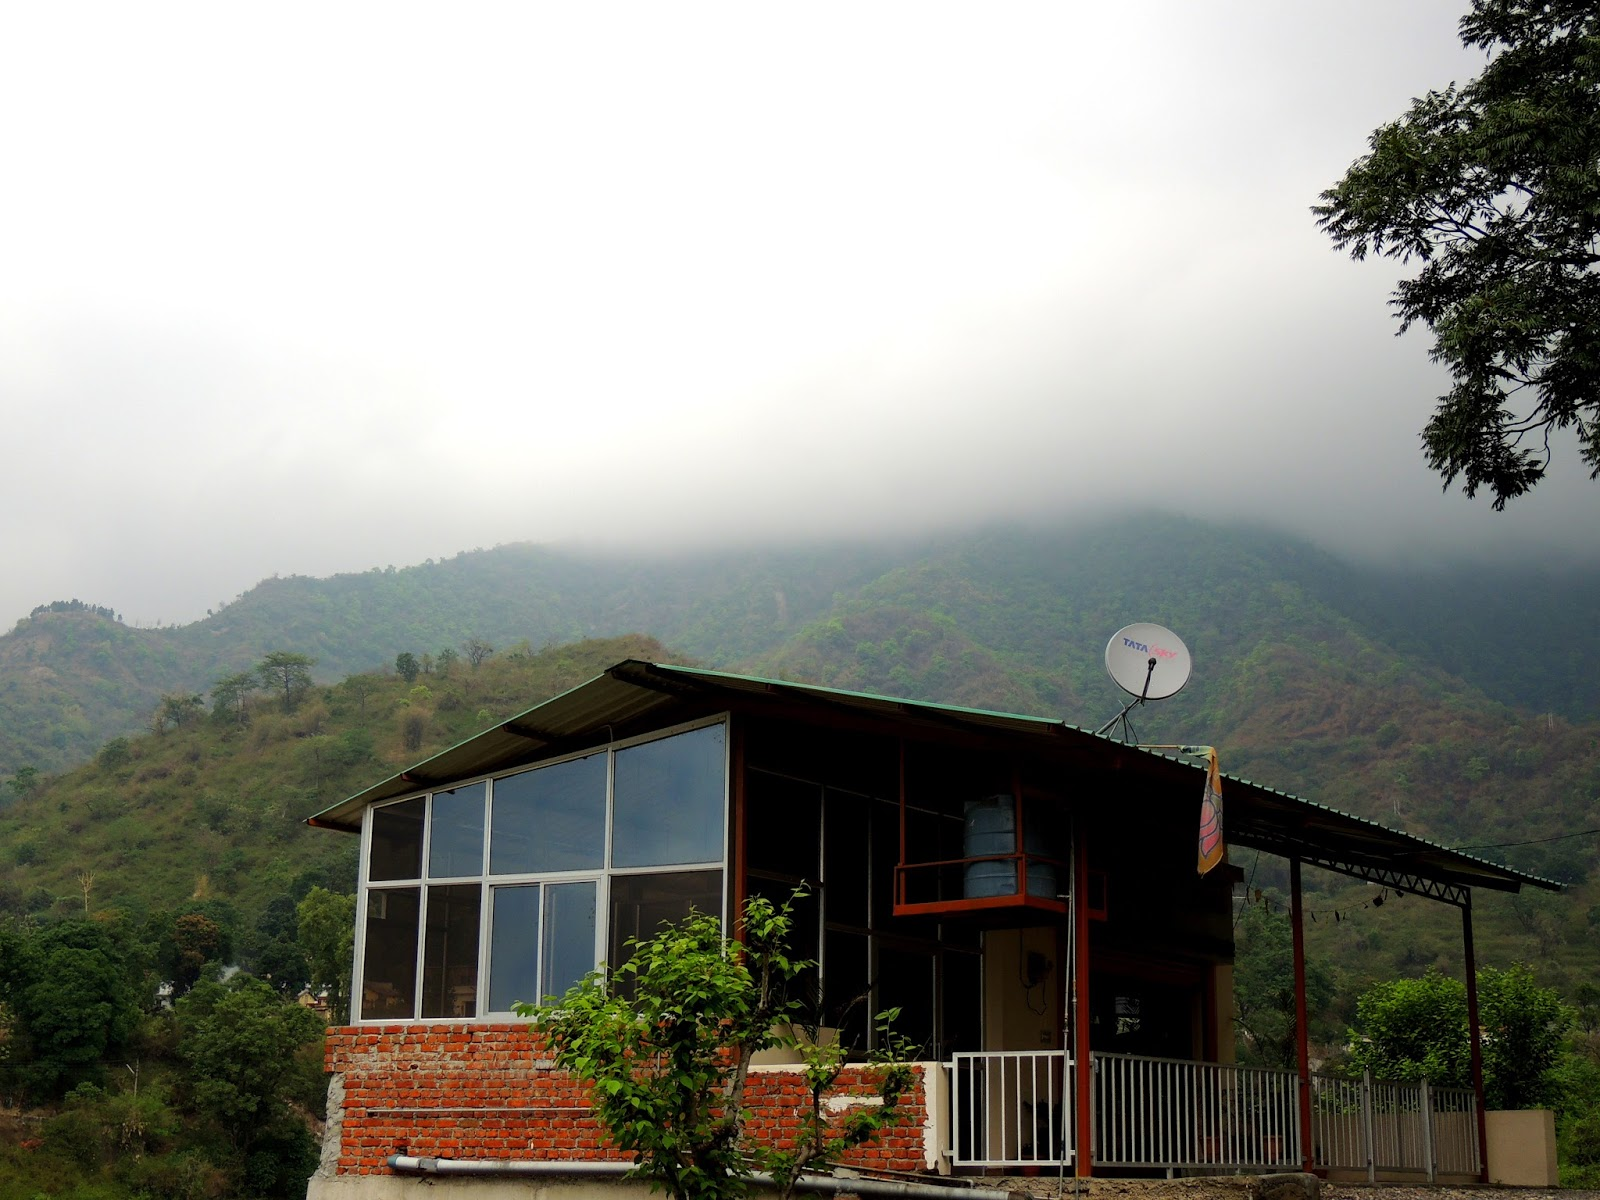 3 One Beautiful House In Dehradun With Weather Changing In